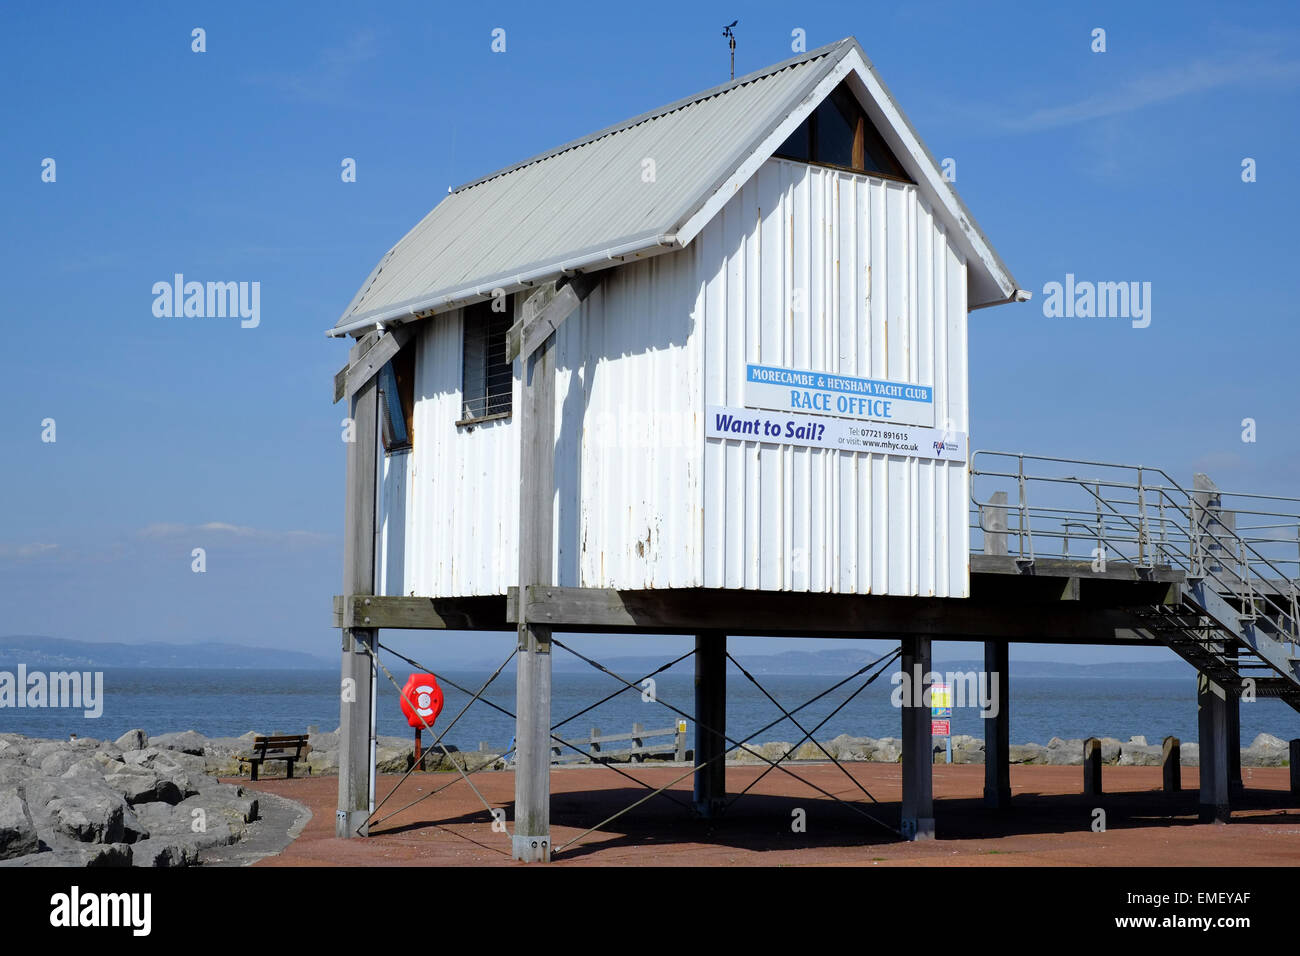 Morecambe and Heysham Yacht Club Race Office overlooks Morecambe Bay Stock Photo